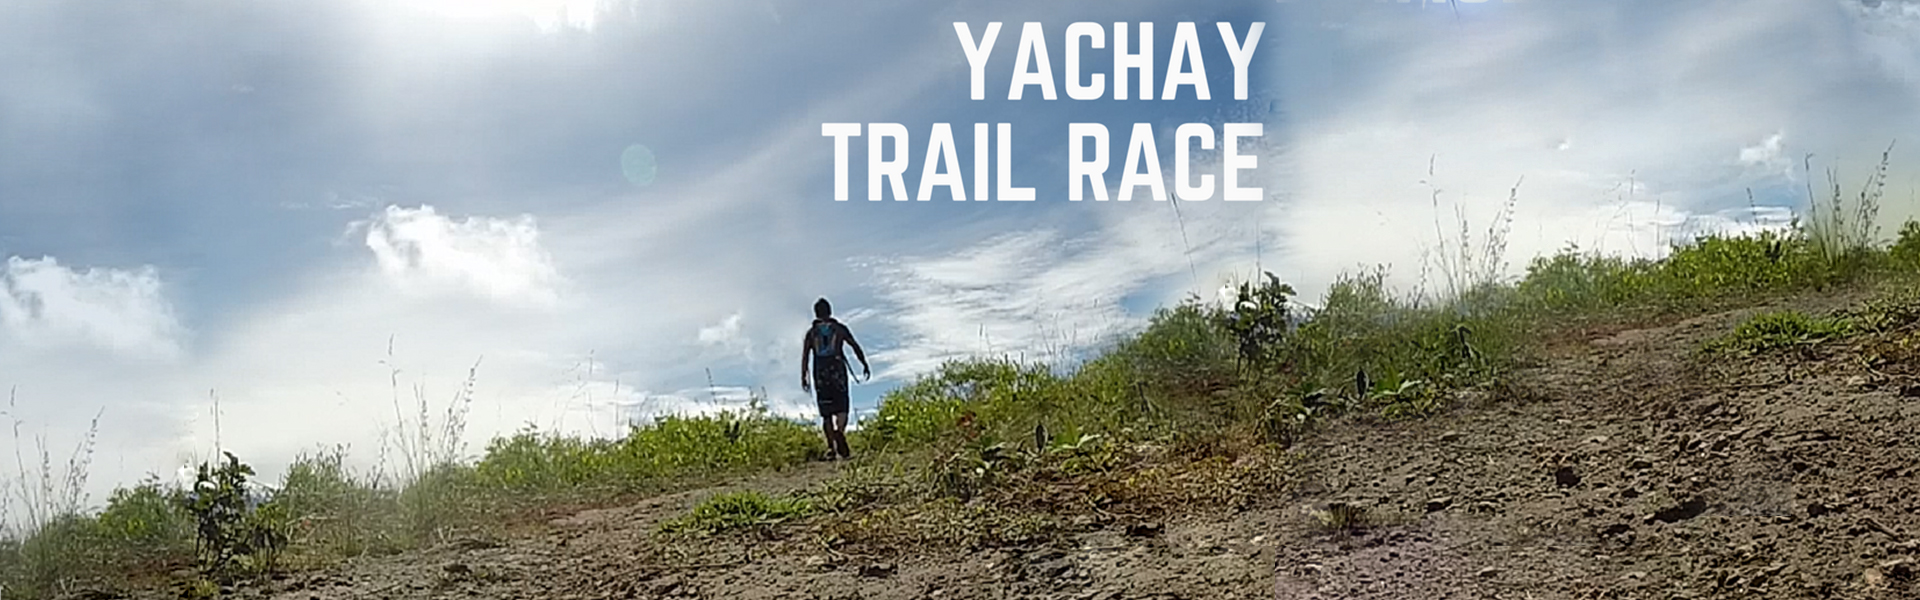 Be Ready for Yachay Trail Race